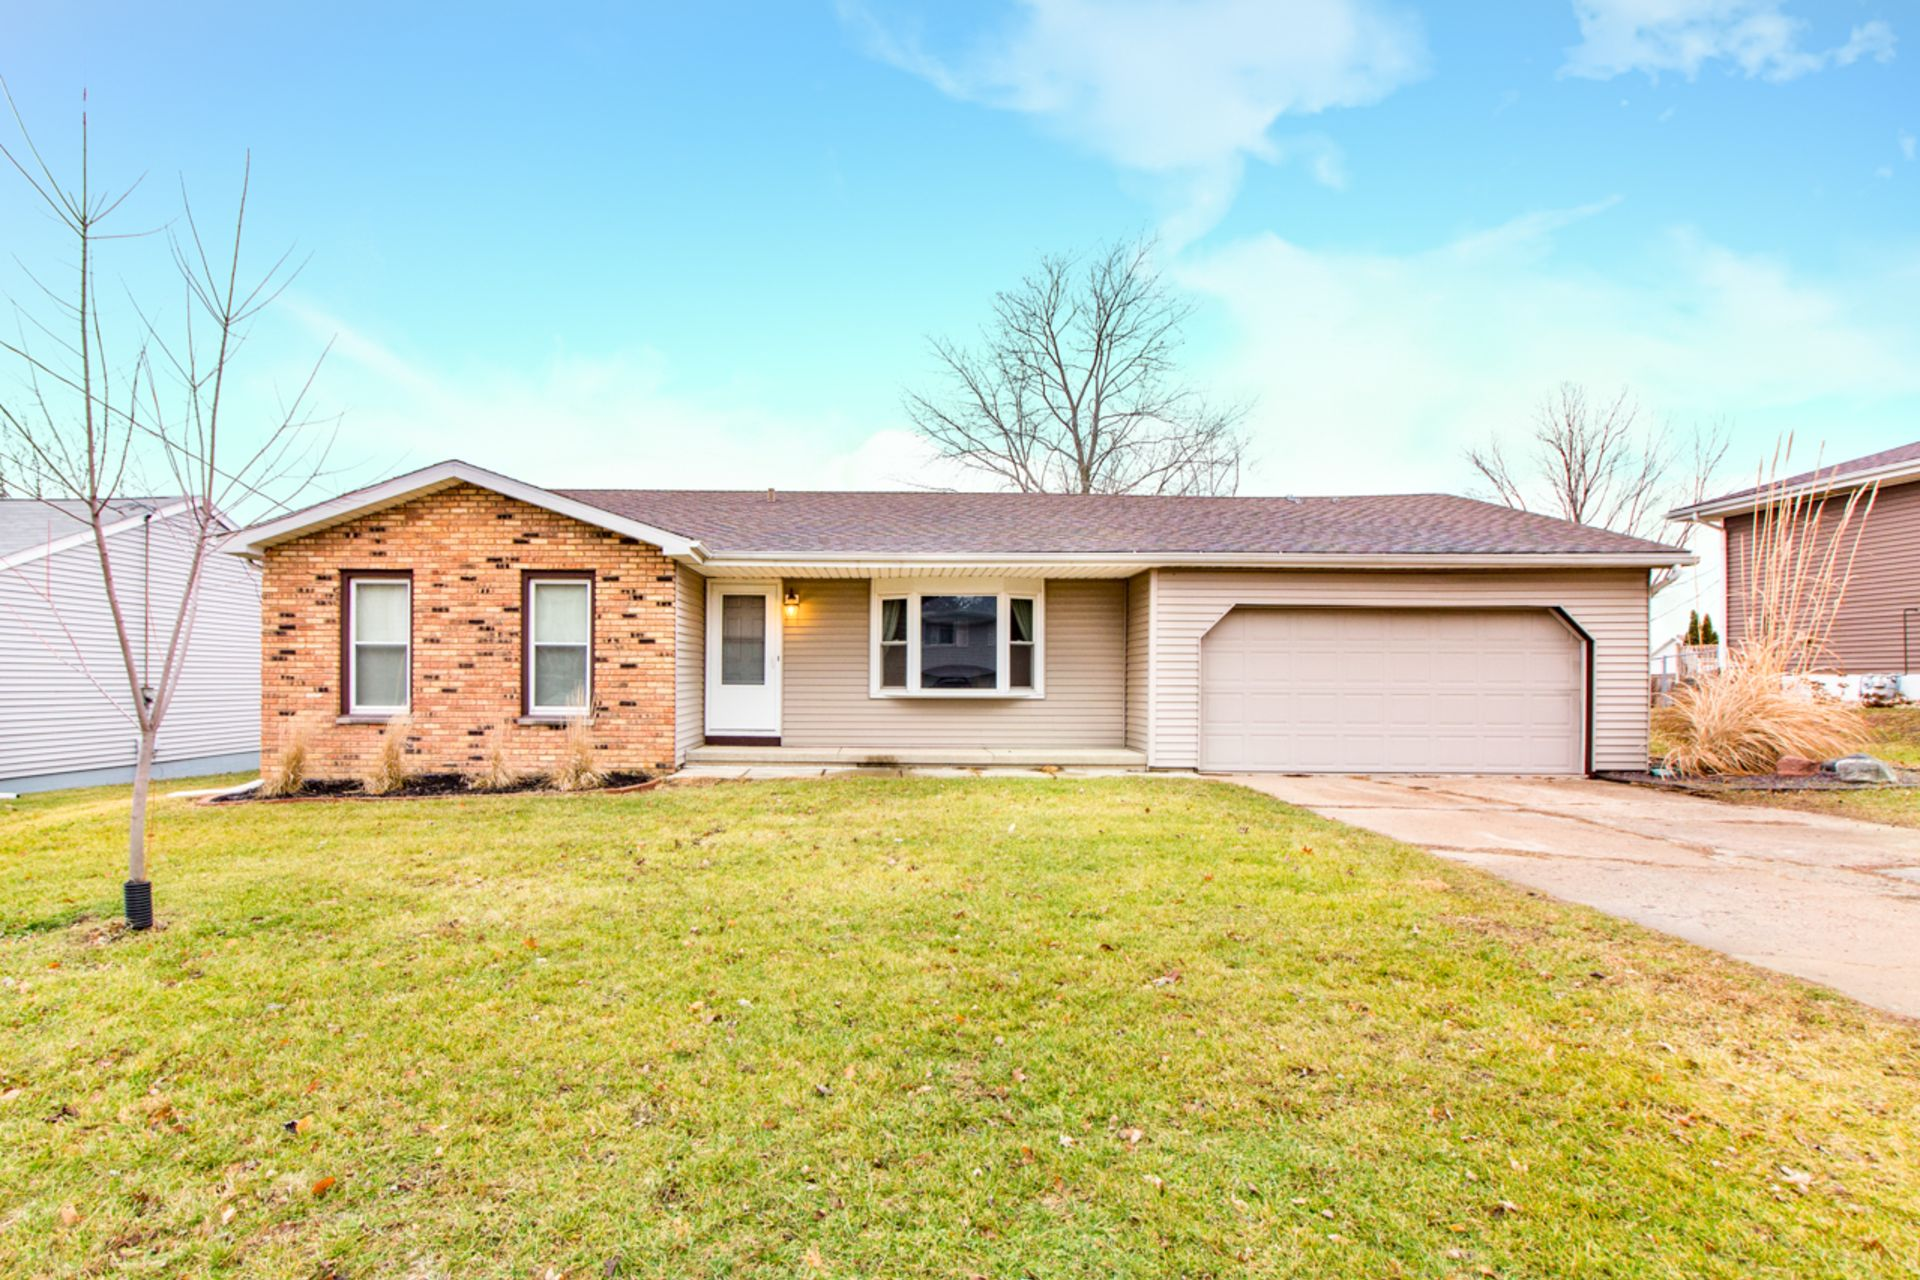 SOLD – 98.9% of List Price – 631 Kerfoot St., East Peoria